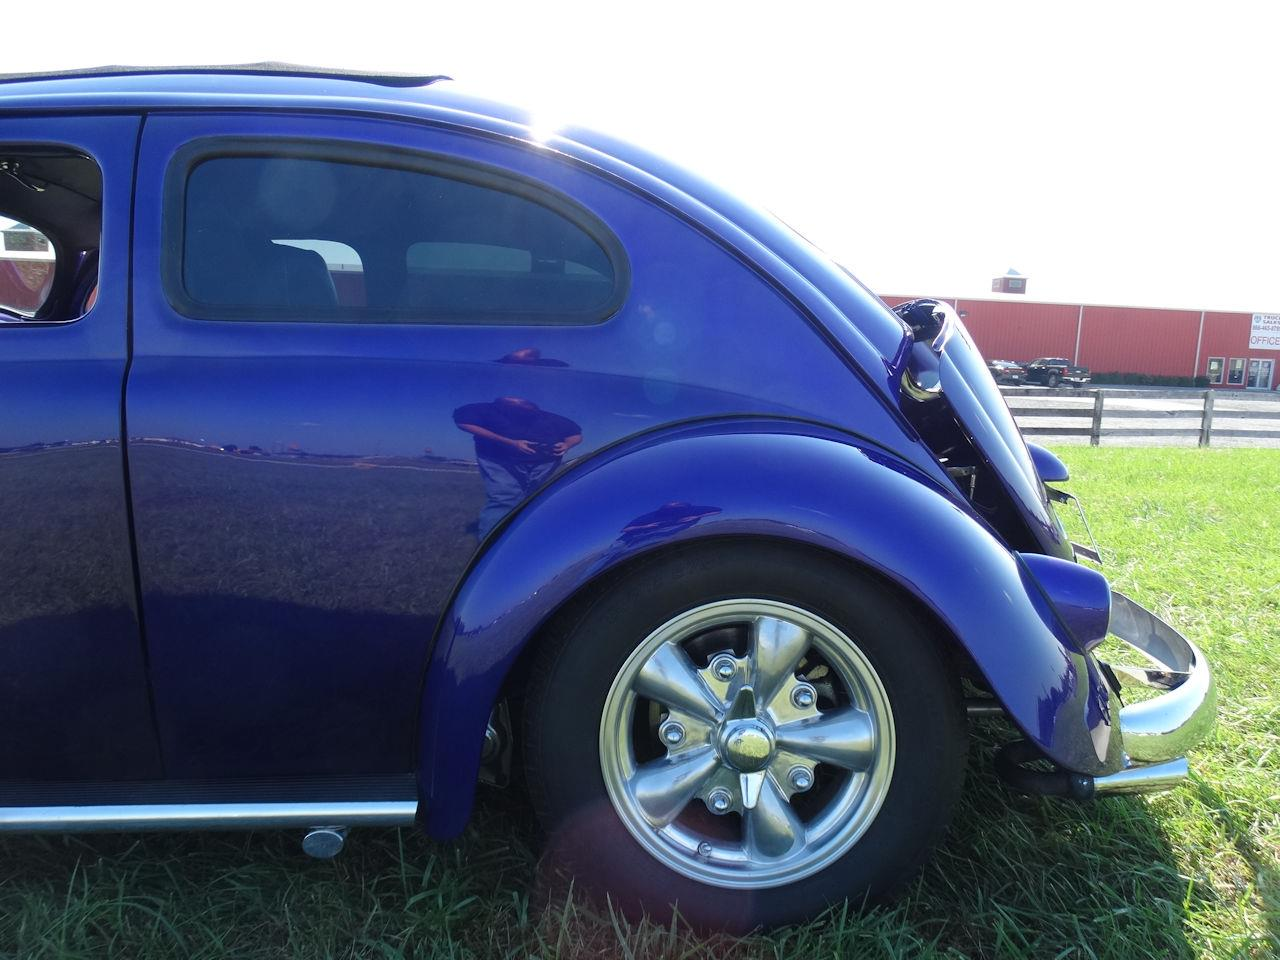 Large Picture of '56 Volkswagen Beetle located in Indiana - $23,995.00 - OOT8